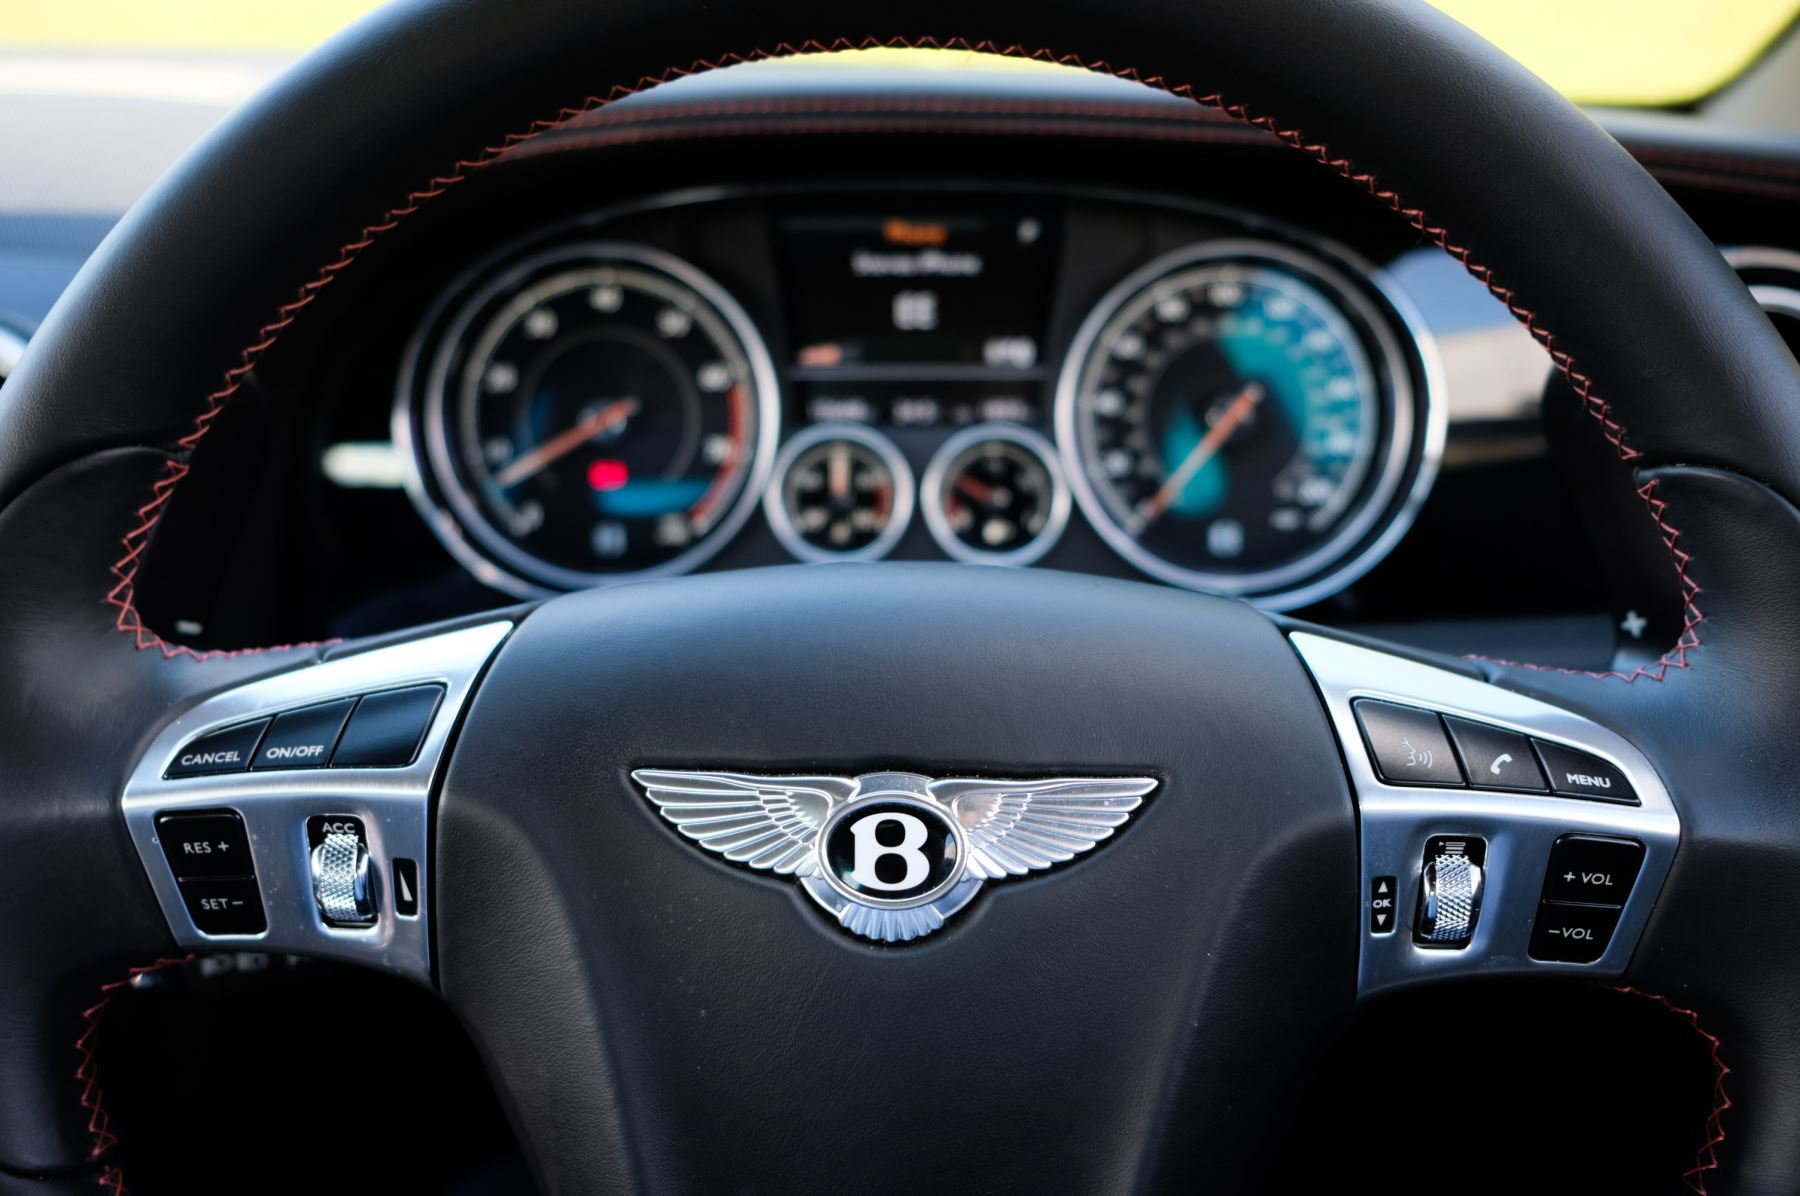 Bentley Continental GTC 4.0 V8 S - Mulliner Driving Spec - Sports Exhaust image 16